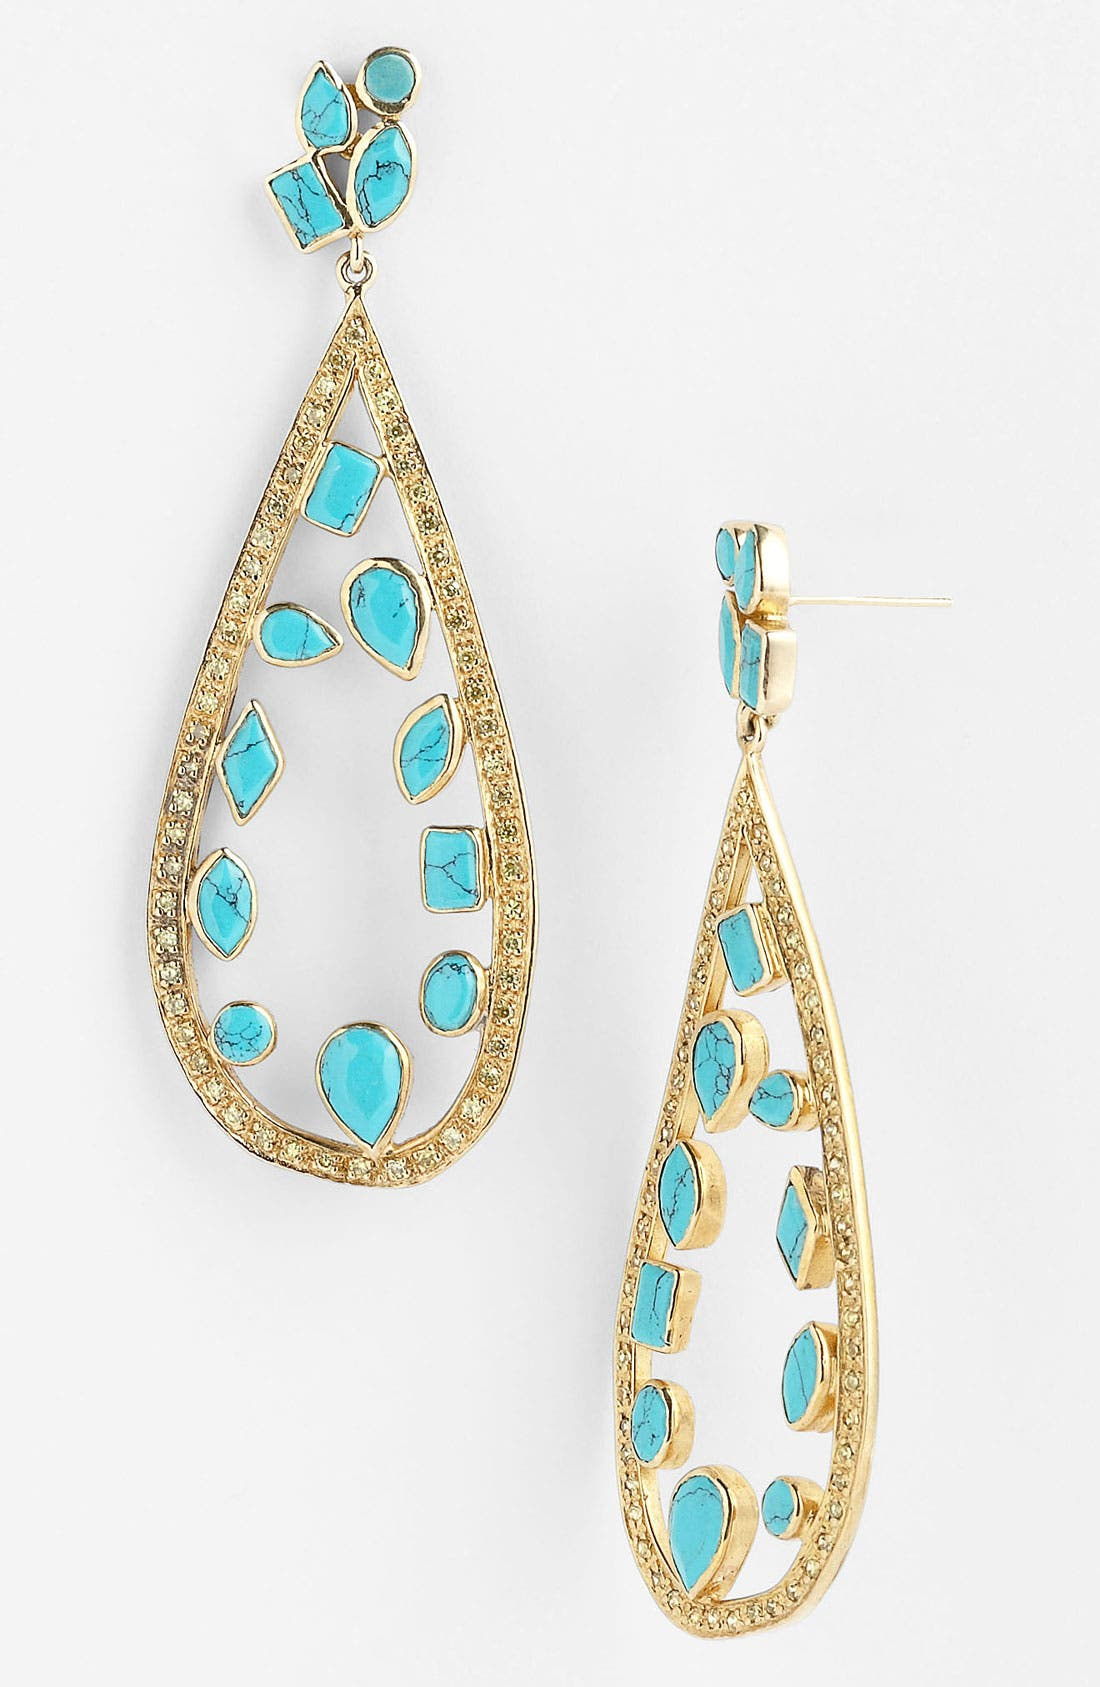 Alternate Image 1 Selected - Melinda Maria 'Floating Mosaic' Open Teardrop Earrings